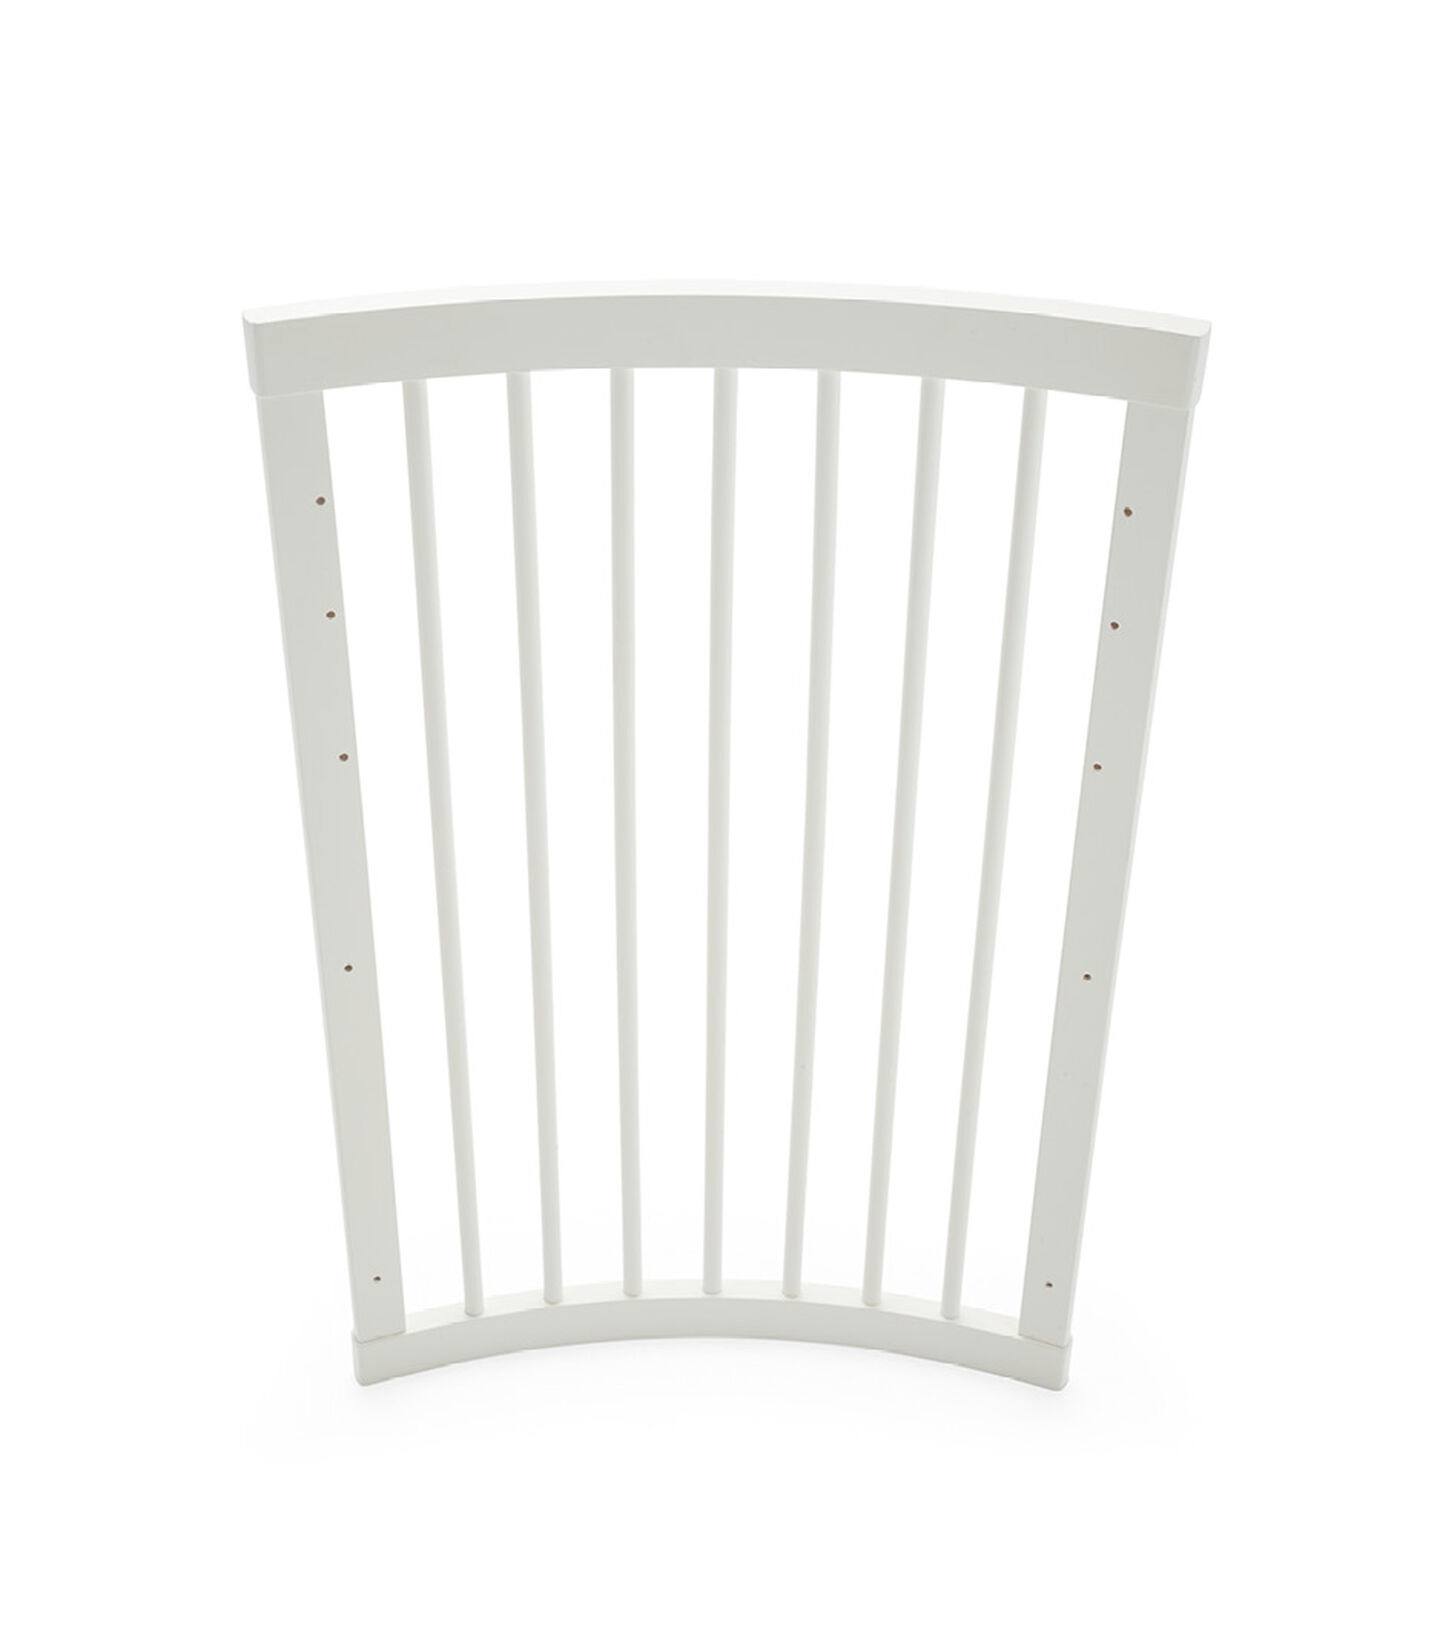 Stokke® Care™ Side sett White, White, mainview view 2